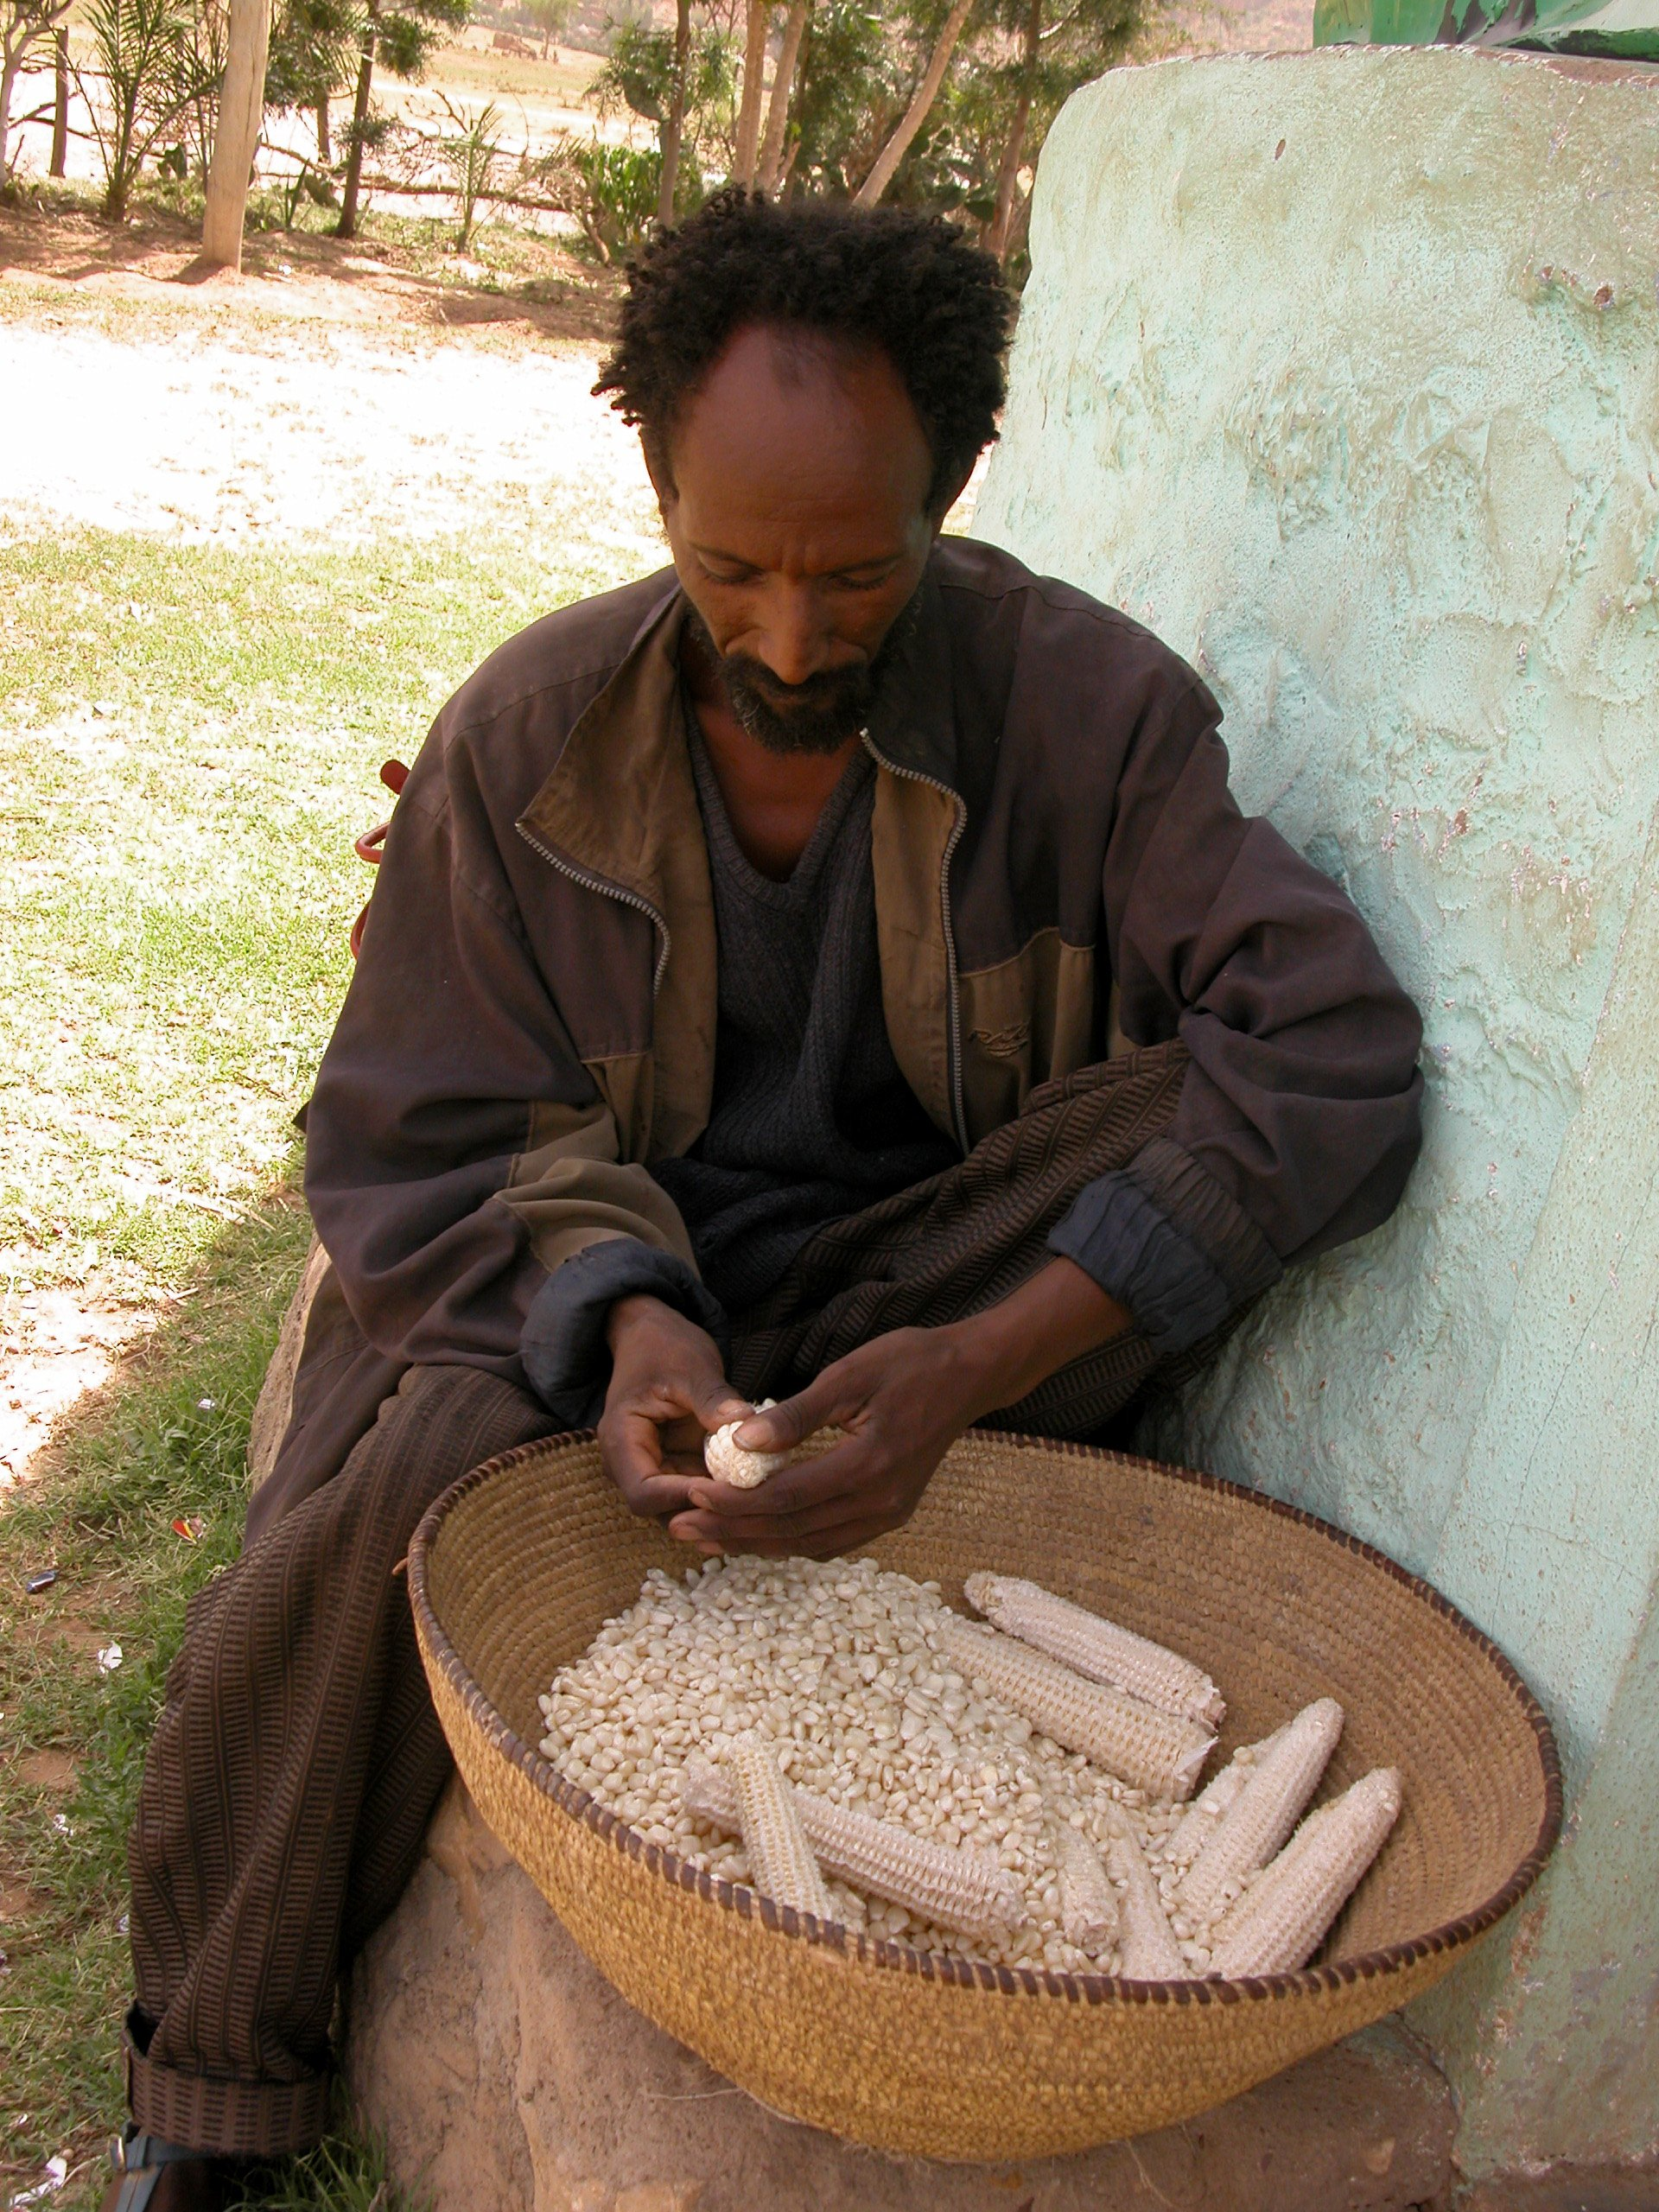 A farmer in Tigray, Ethiopia